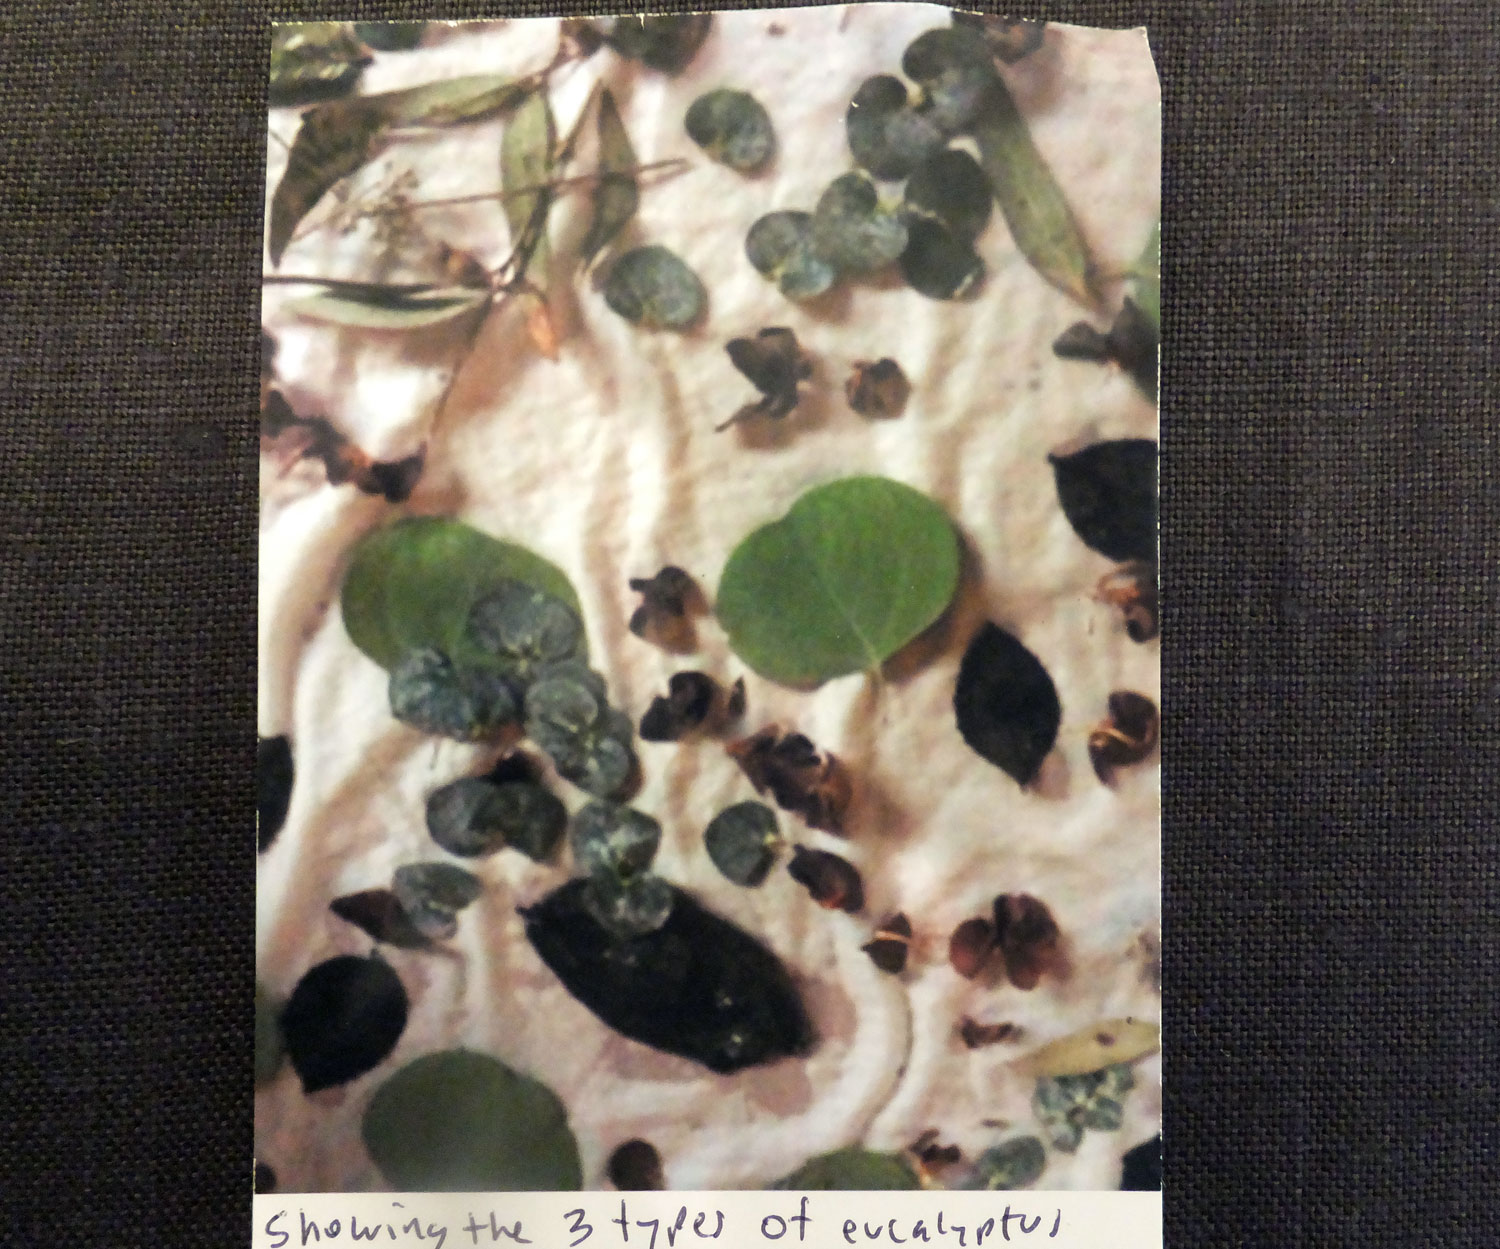 Picture of the Photograph Ruth sent to me showing the different types of eucalyptus she used.